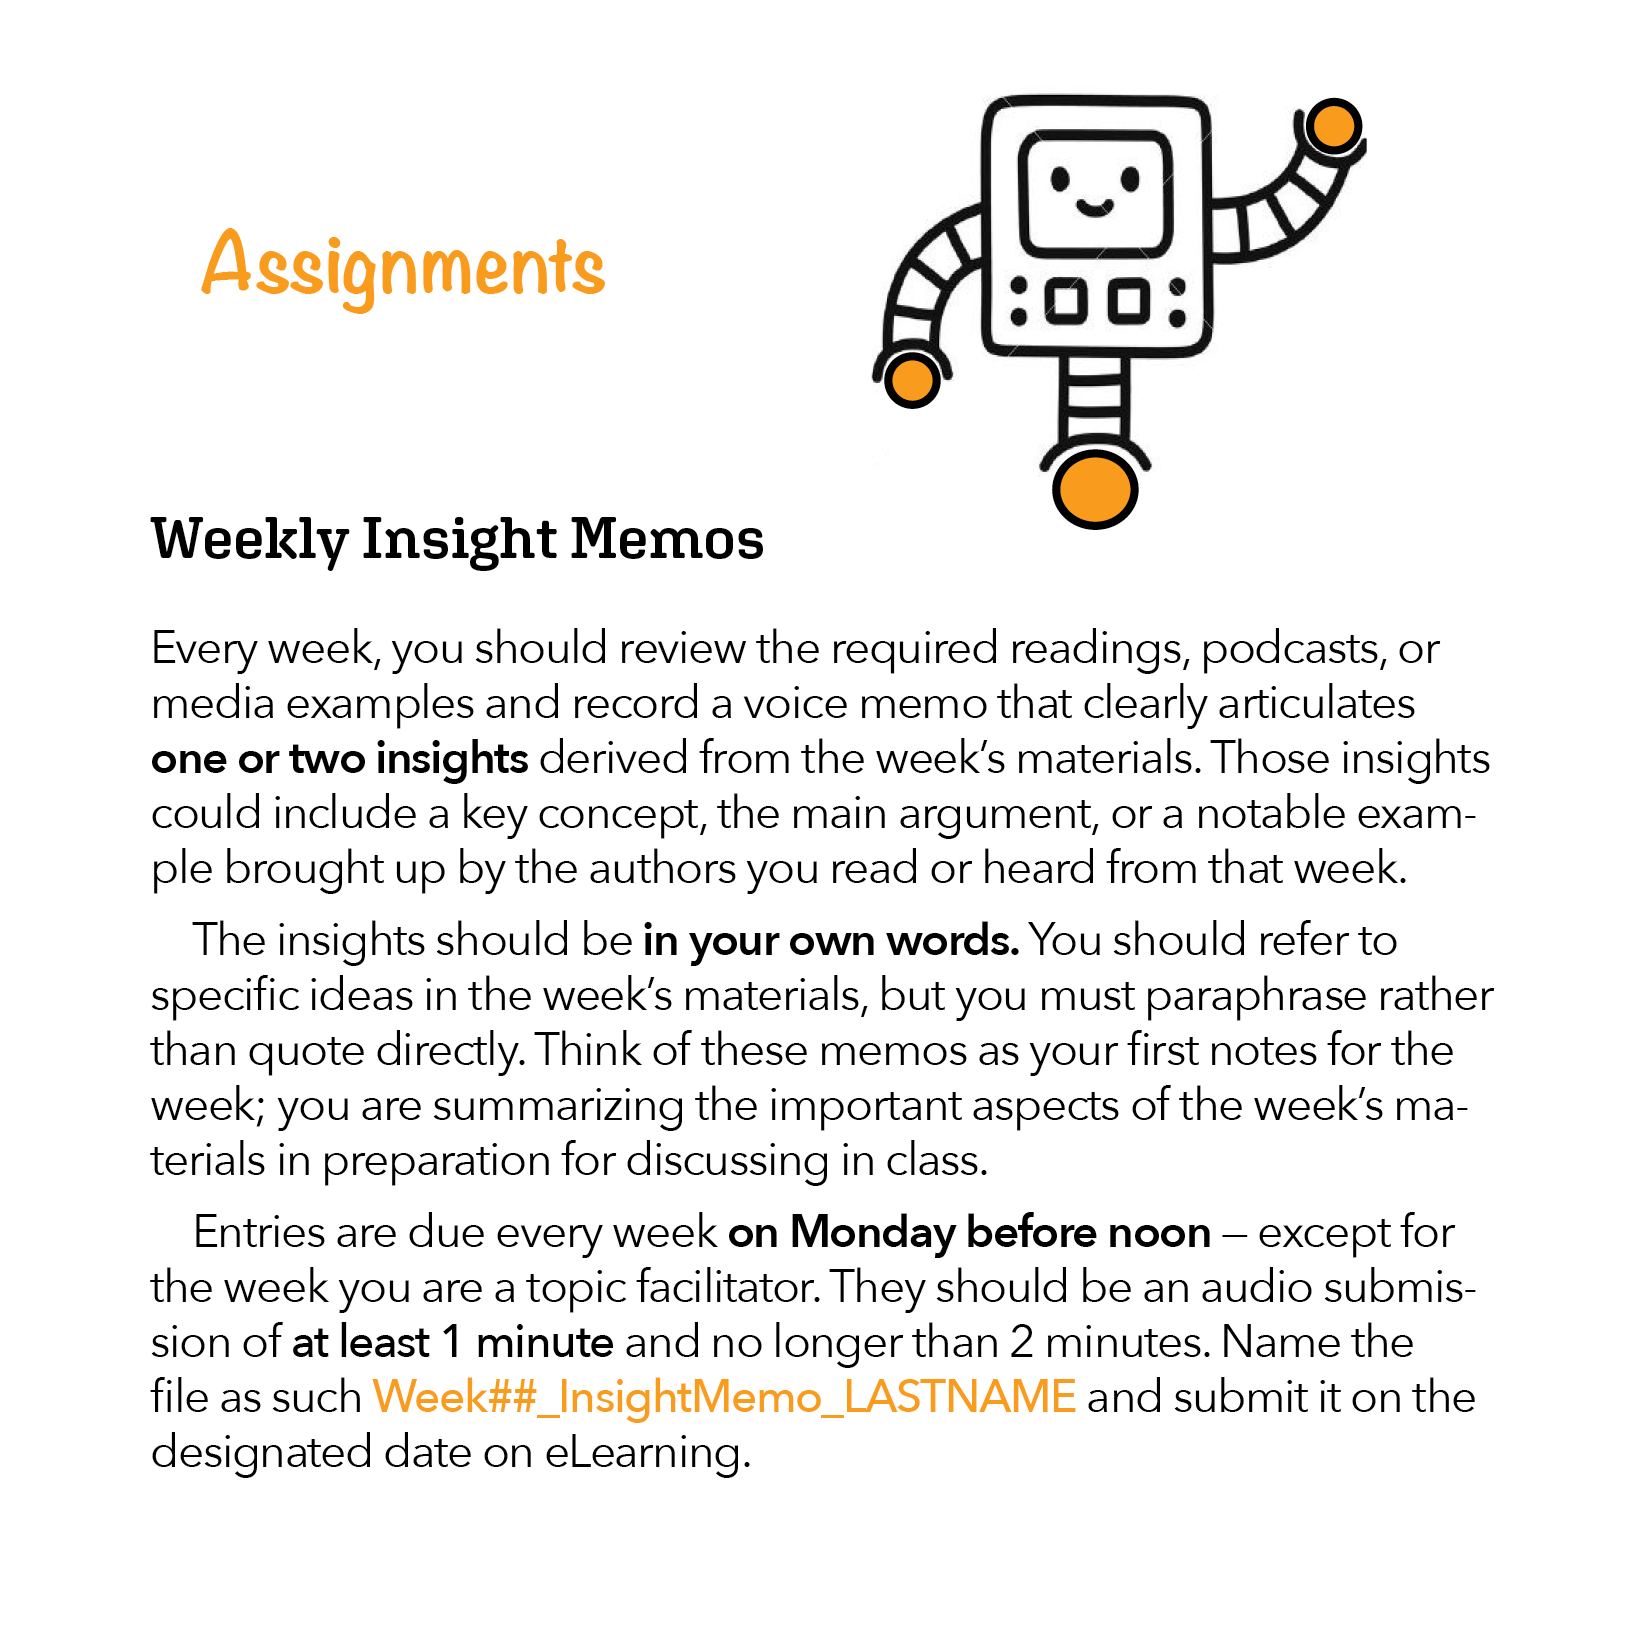 Description of Weekly Insight Memo from Course Syllabus